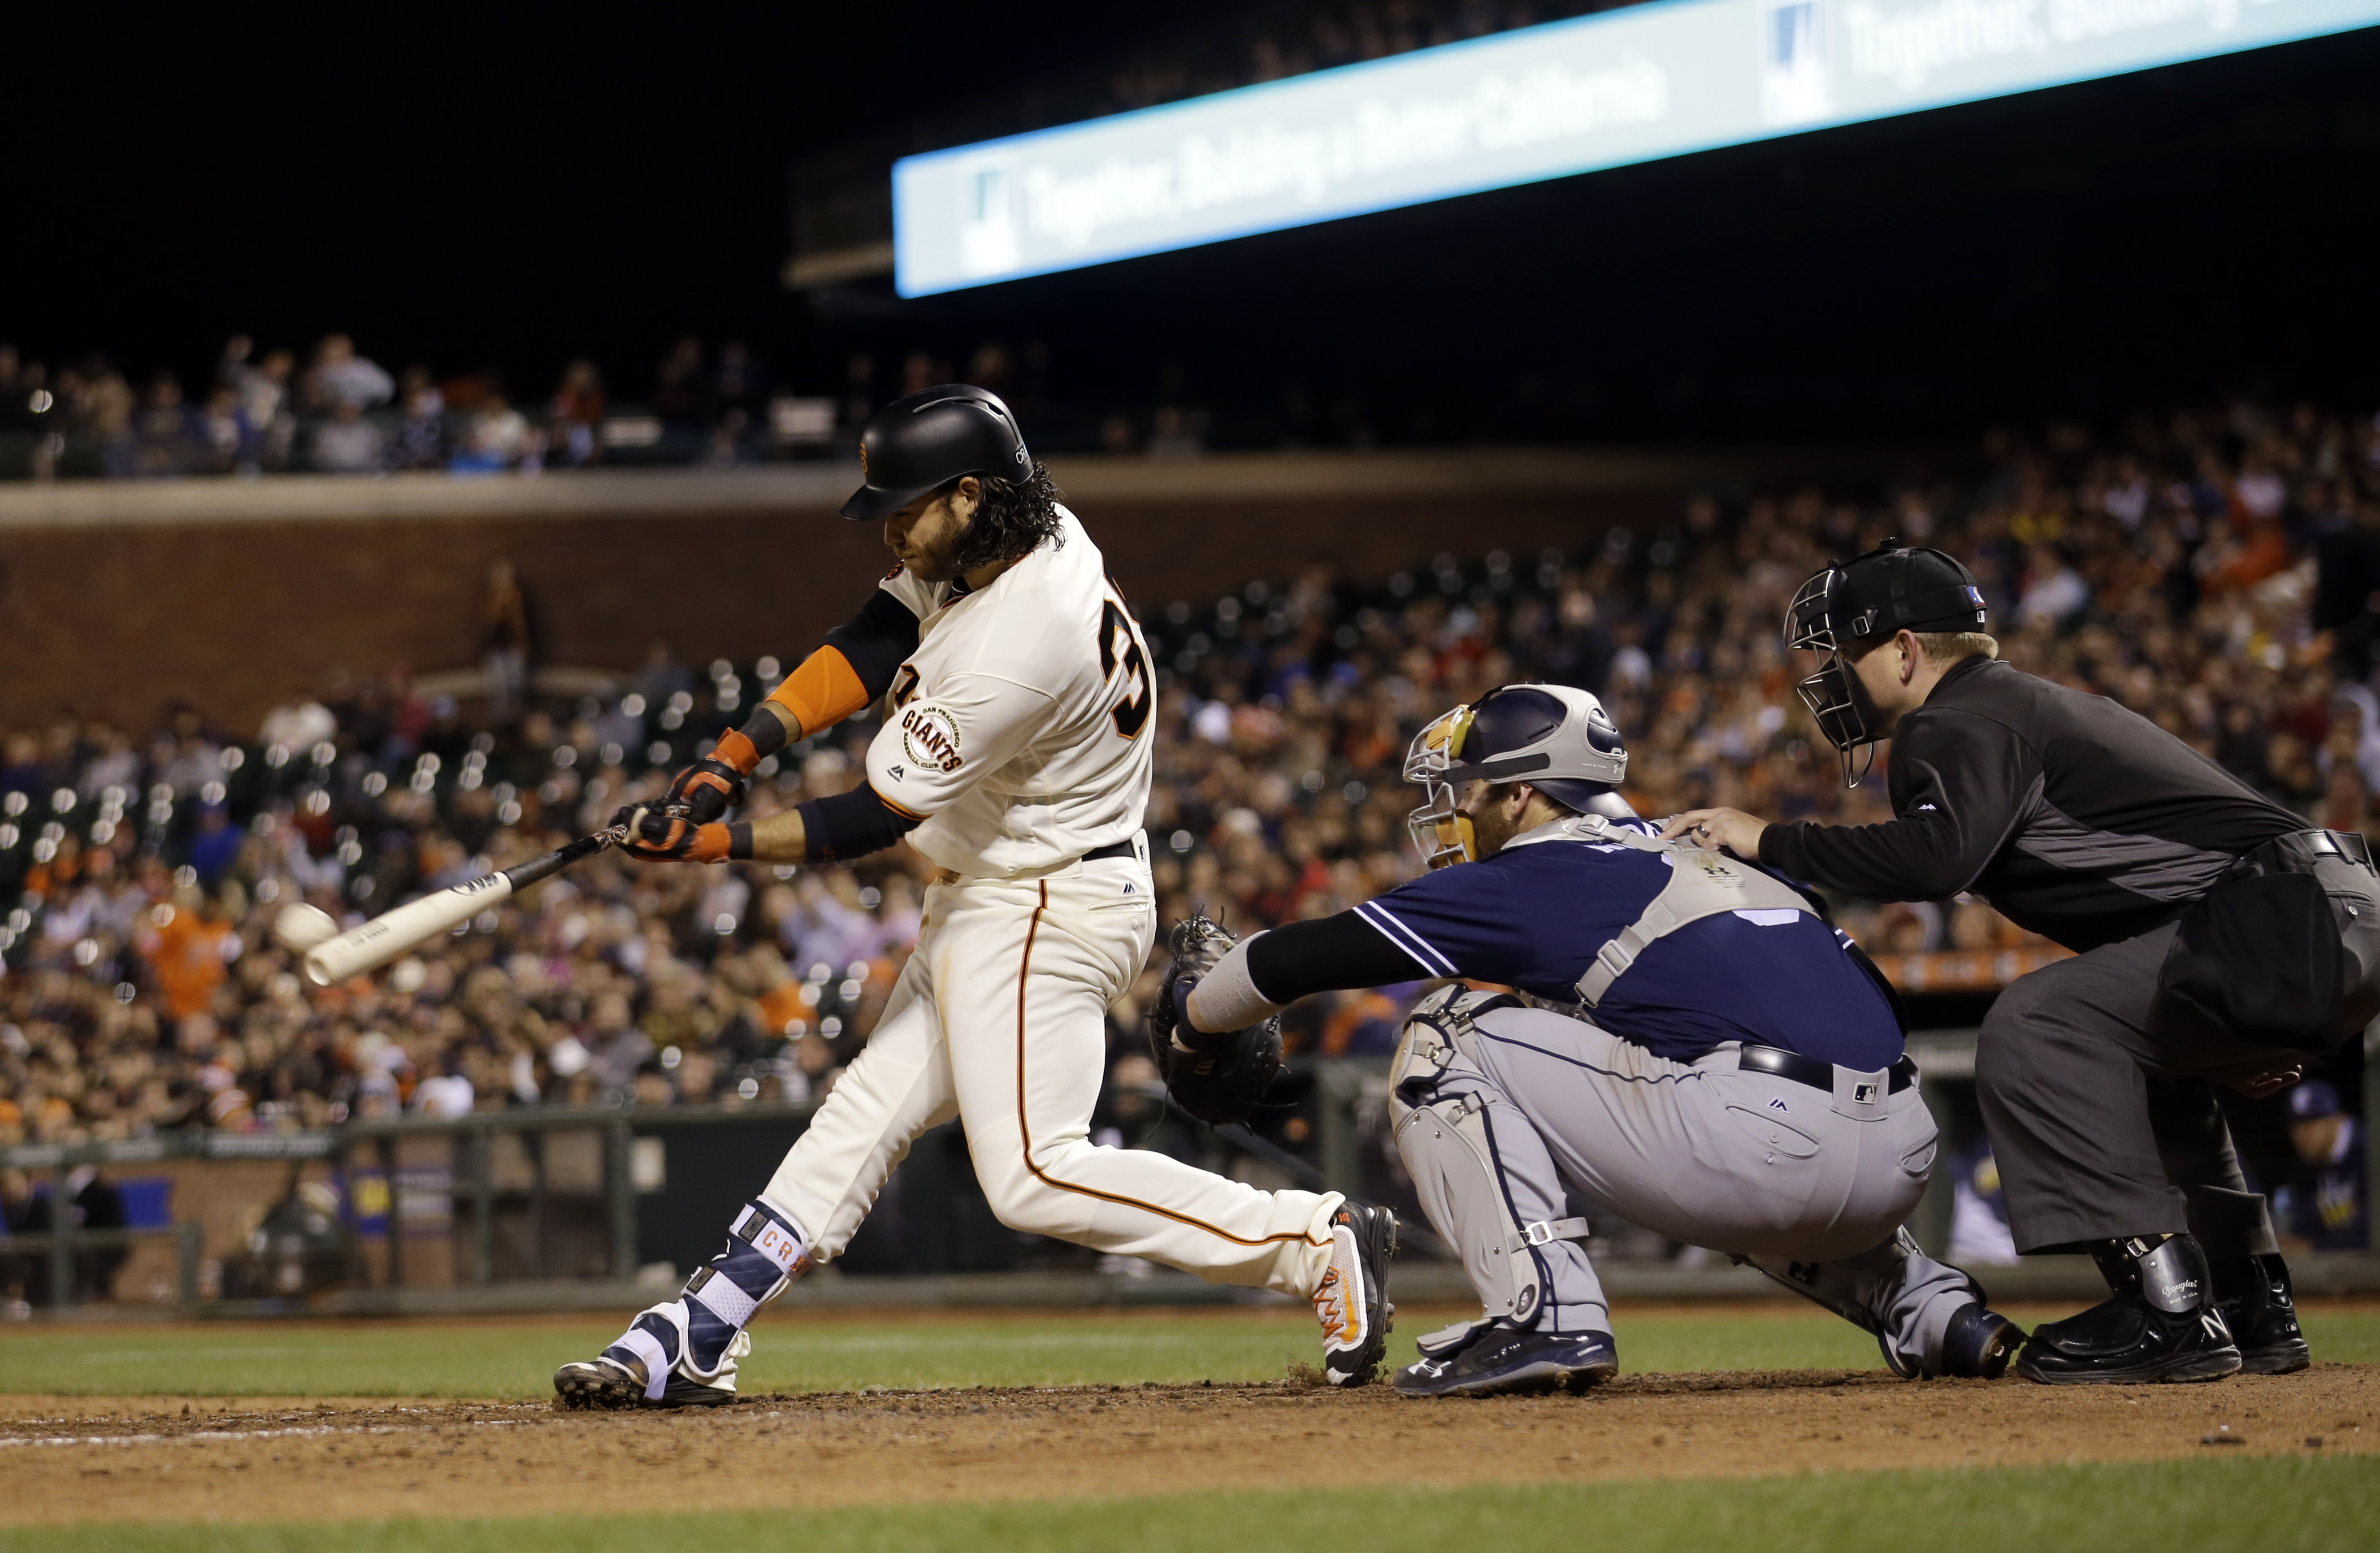 San Francisco Giants' Brandon Crawford drives in three runs with a bases-loaded triple during the eighth inning of a baseball game against the San Diego Padres Tuesday, May 24, 2016, in San Francisco. (AP Photo/Marcio Jose Sanchez)